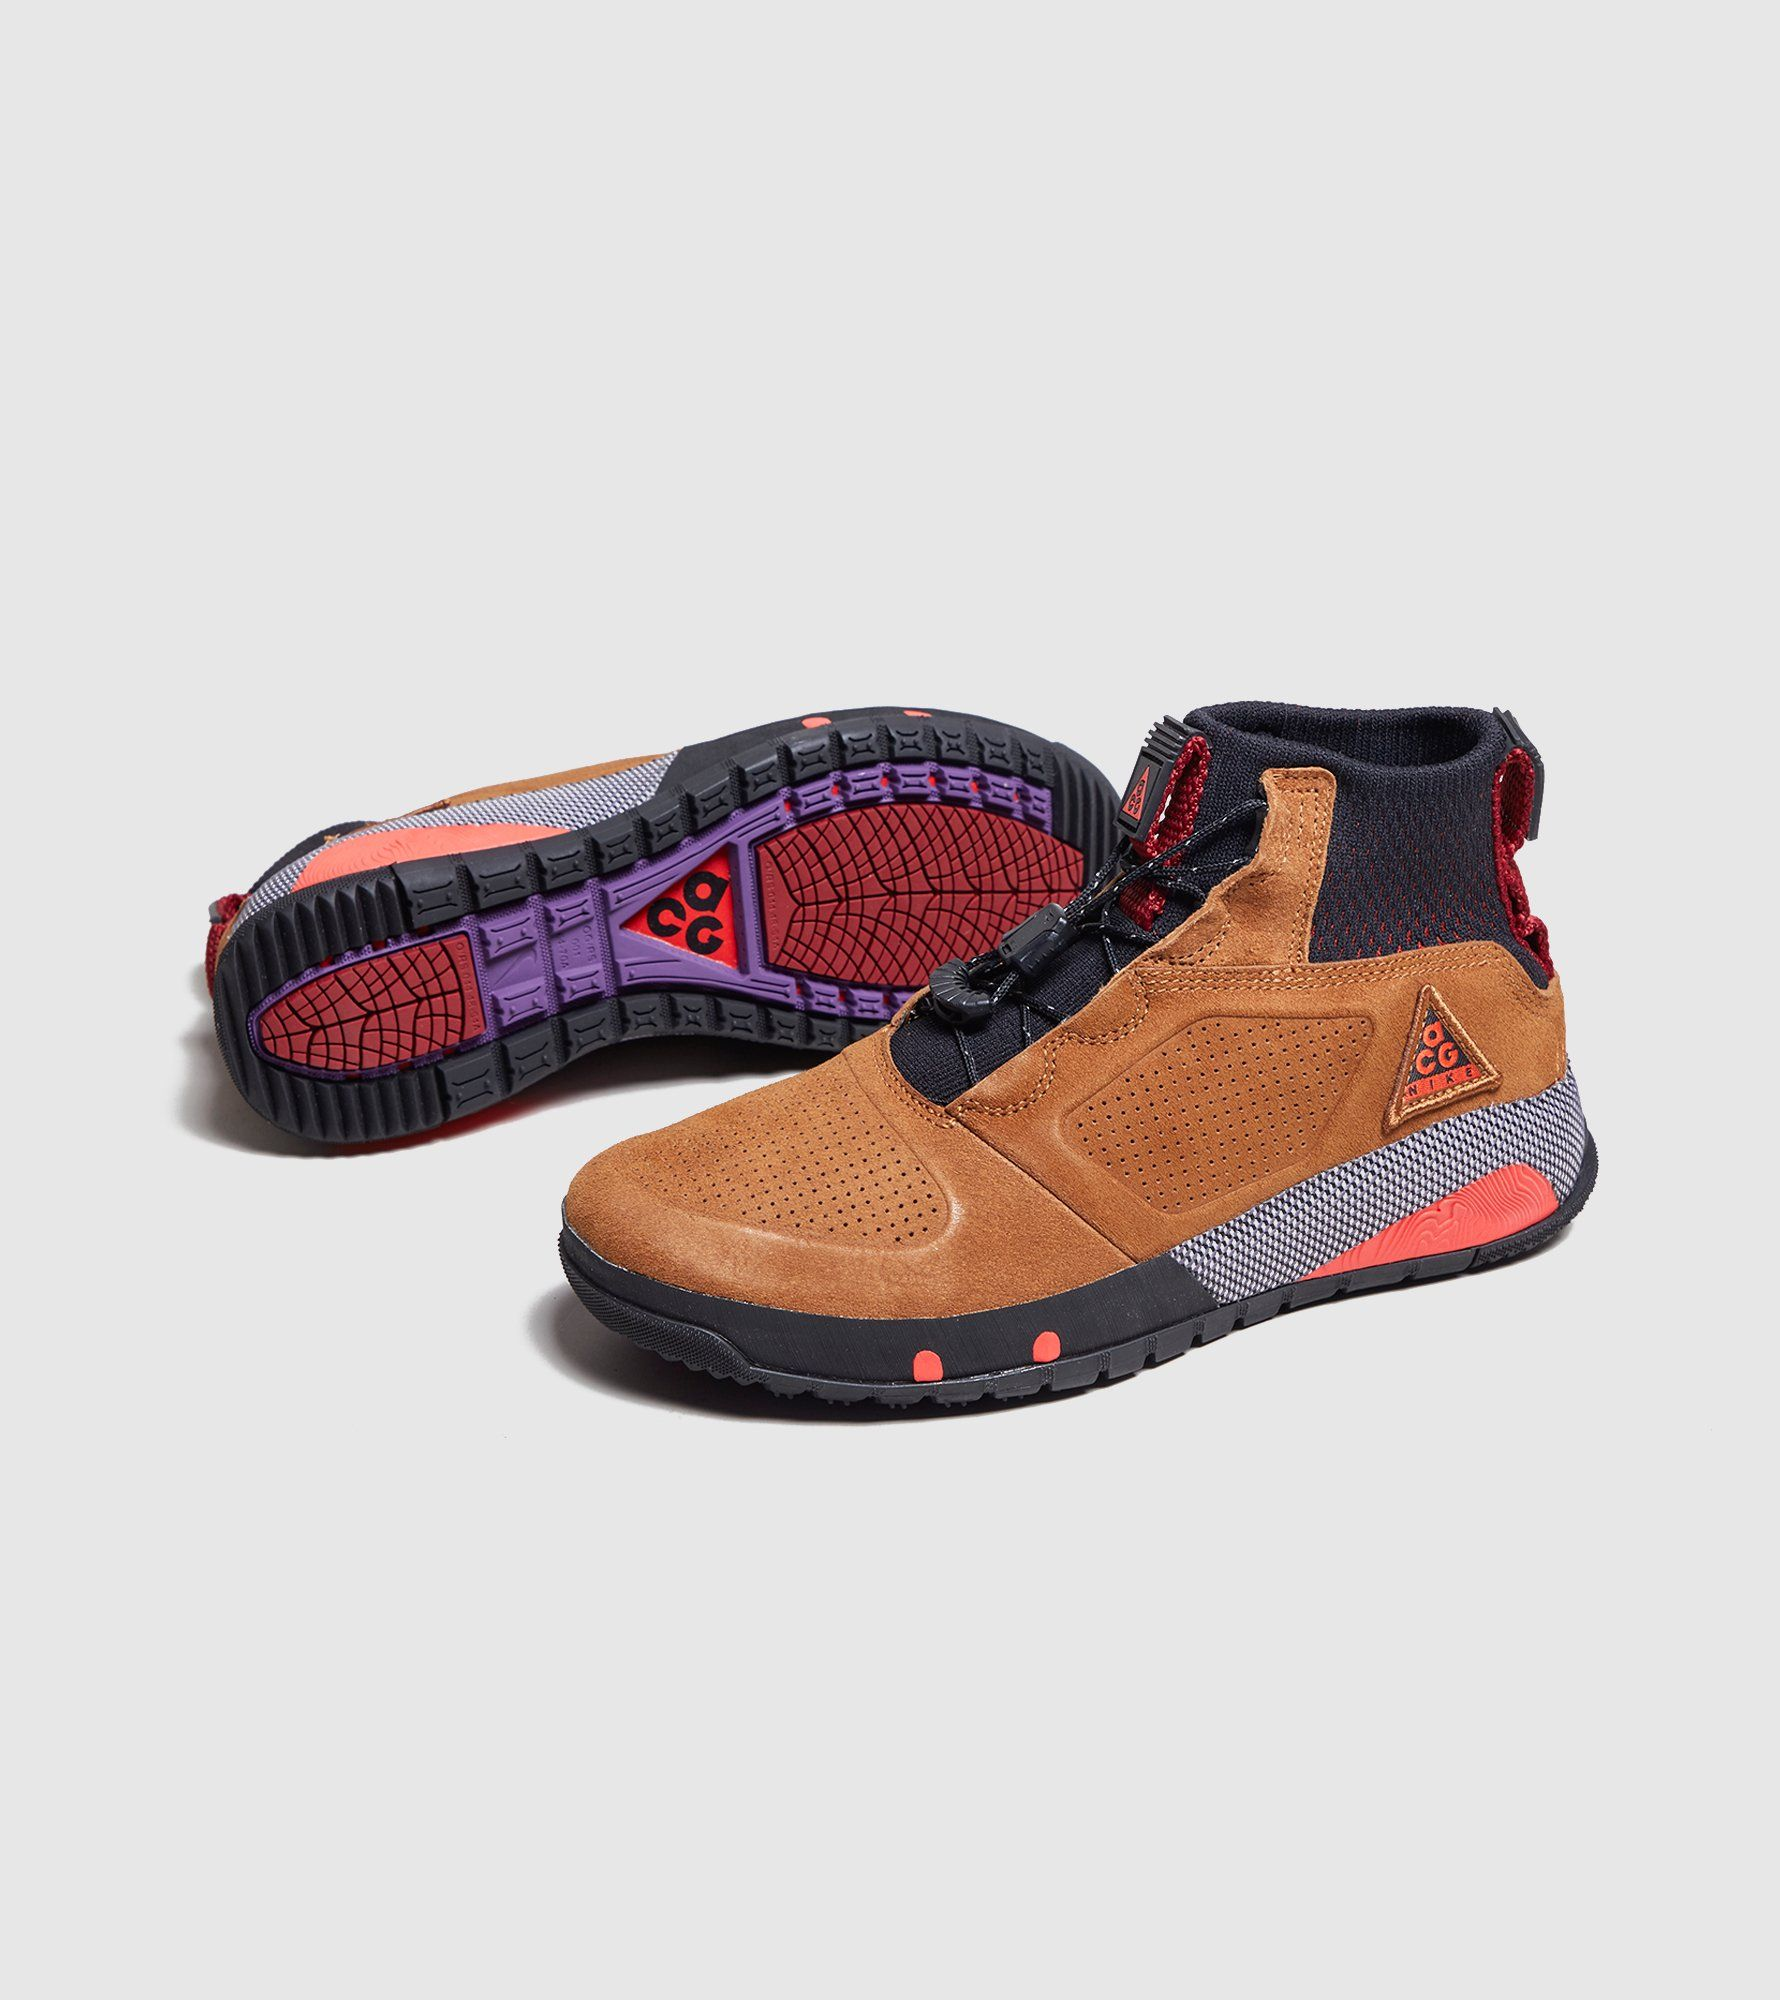 Nike Ruckel Ridge QS Women's